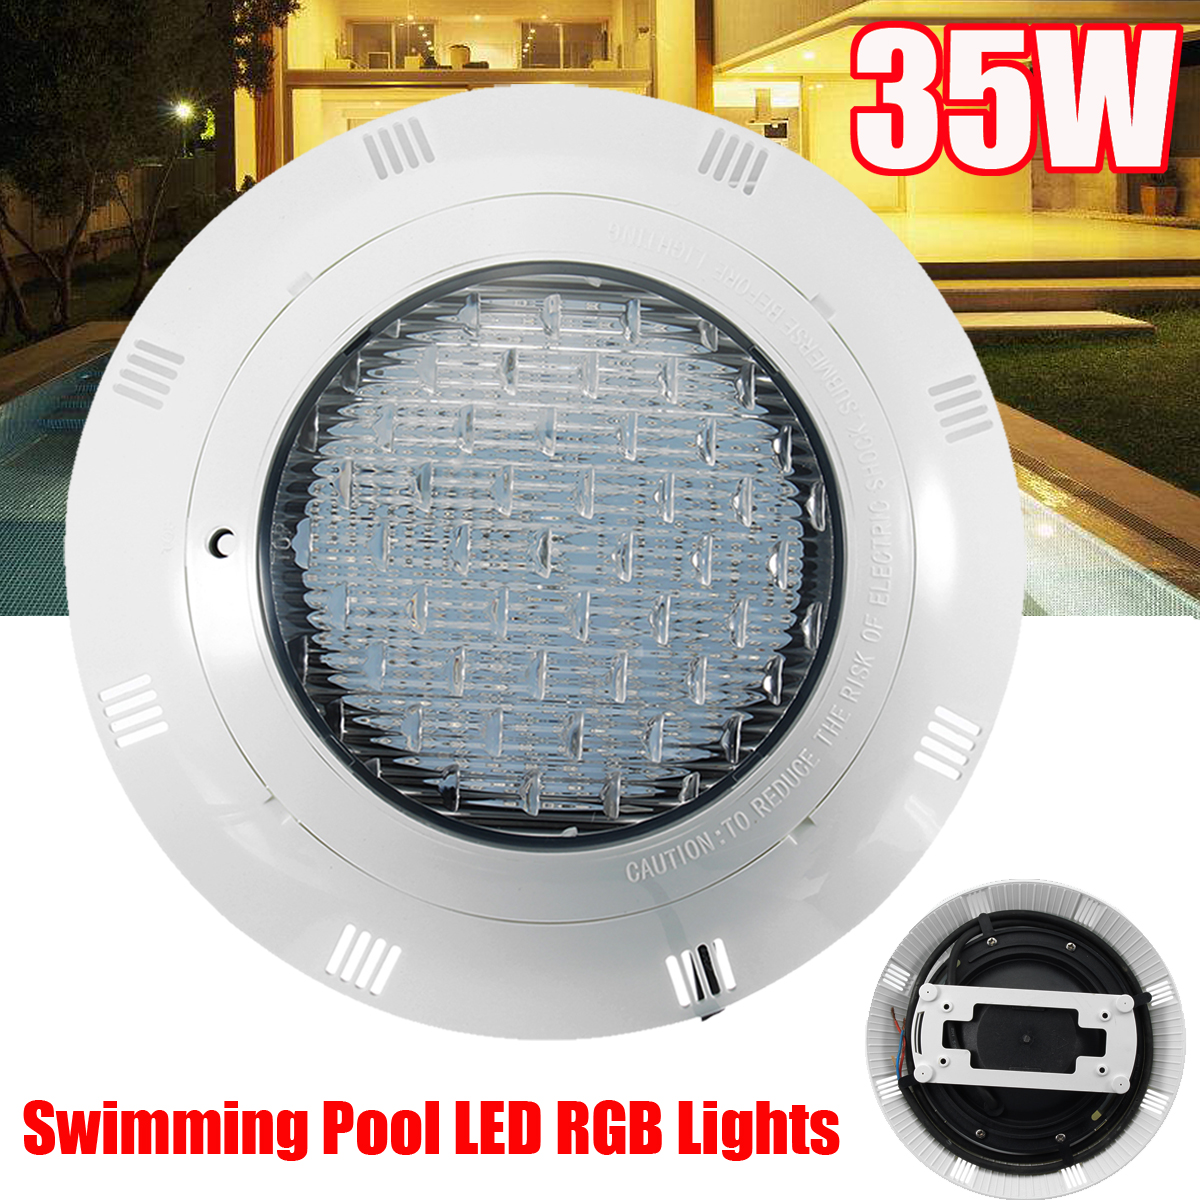 252 LED 35W 12V RGB Swimming Pool Underwater Light IP68 Wall Mounted Power LED Outdoor Underwater Lighting 7Color Remote Control